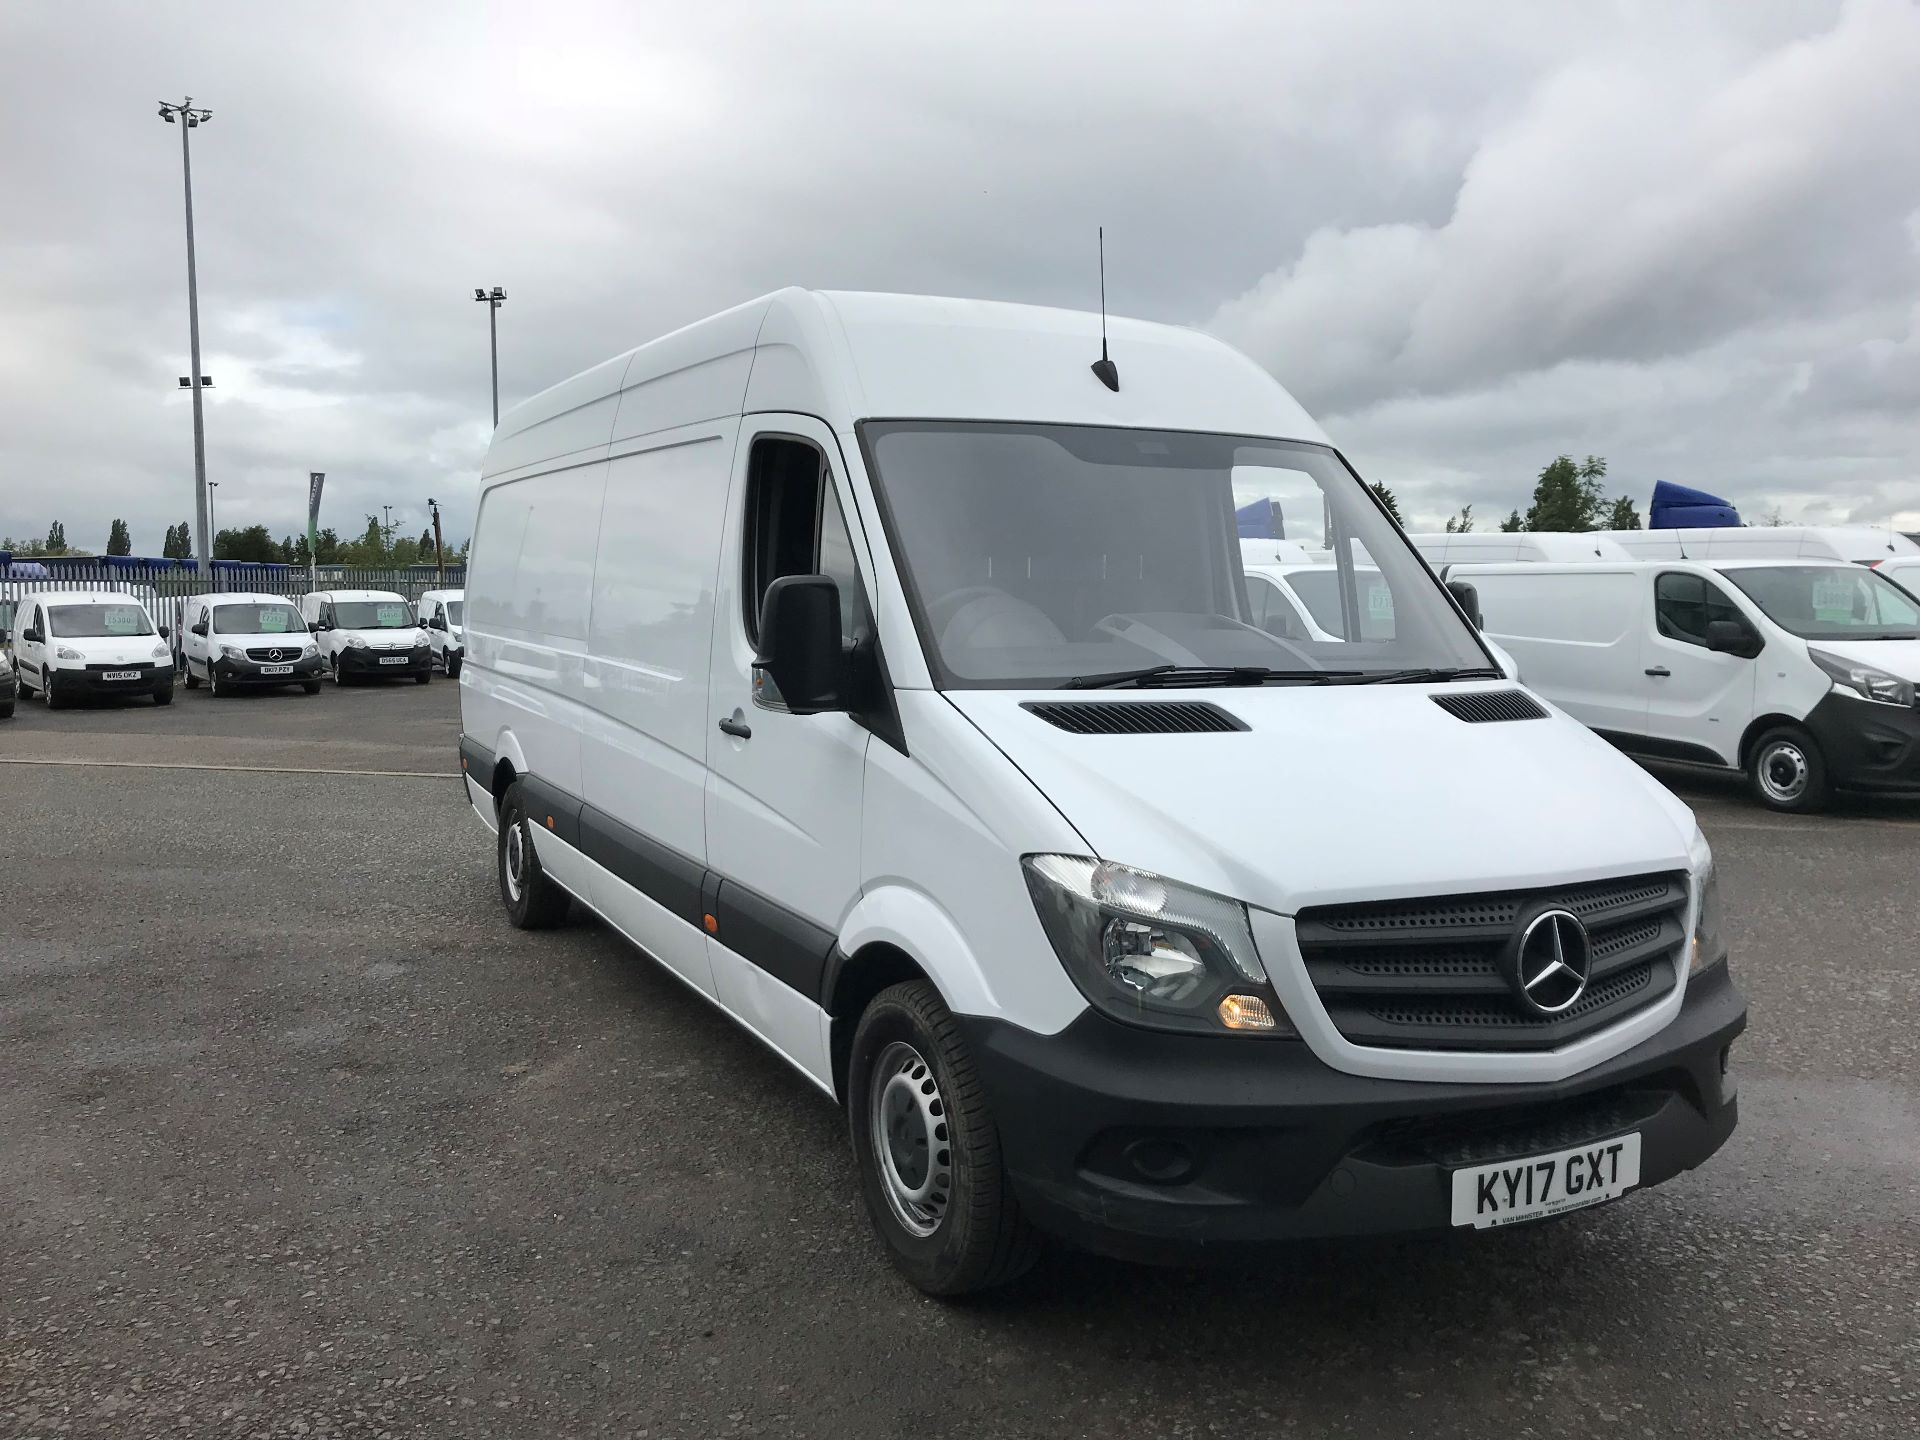 2017 Mercedes-Benz Sprinter 3.5T High Roof Van *VALUE RANGE VEHICLE CONDITION REFLECTED IN PRICE* (KY17GXT)